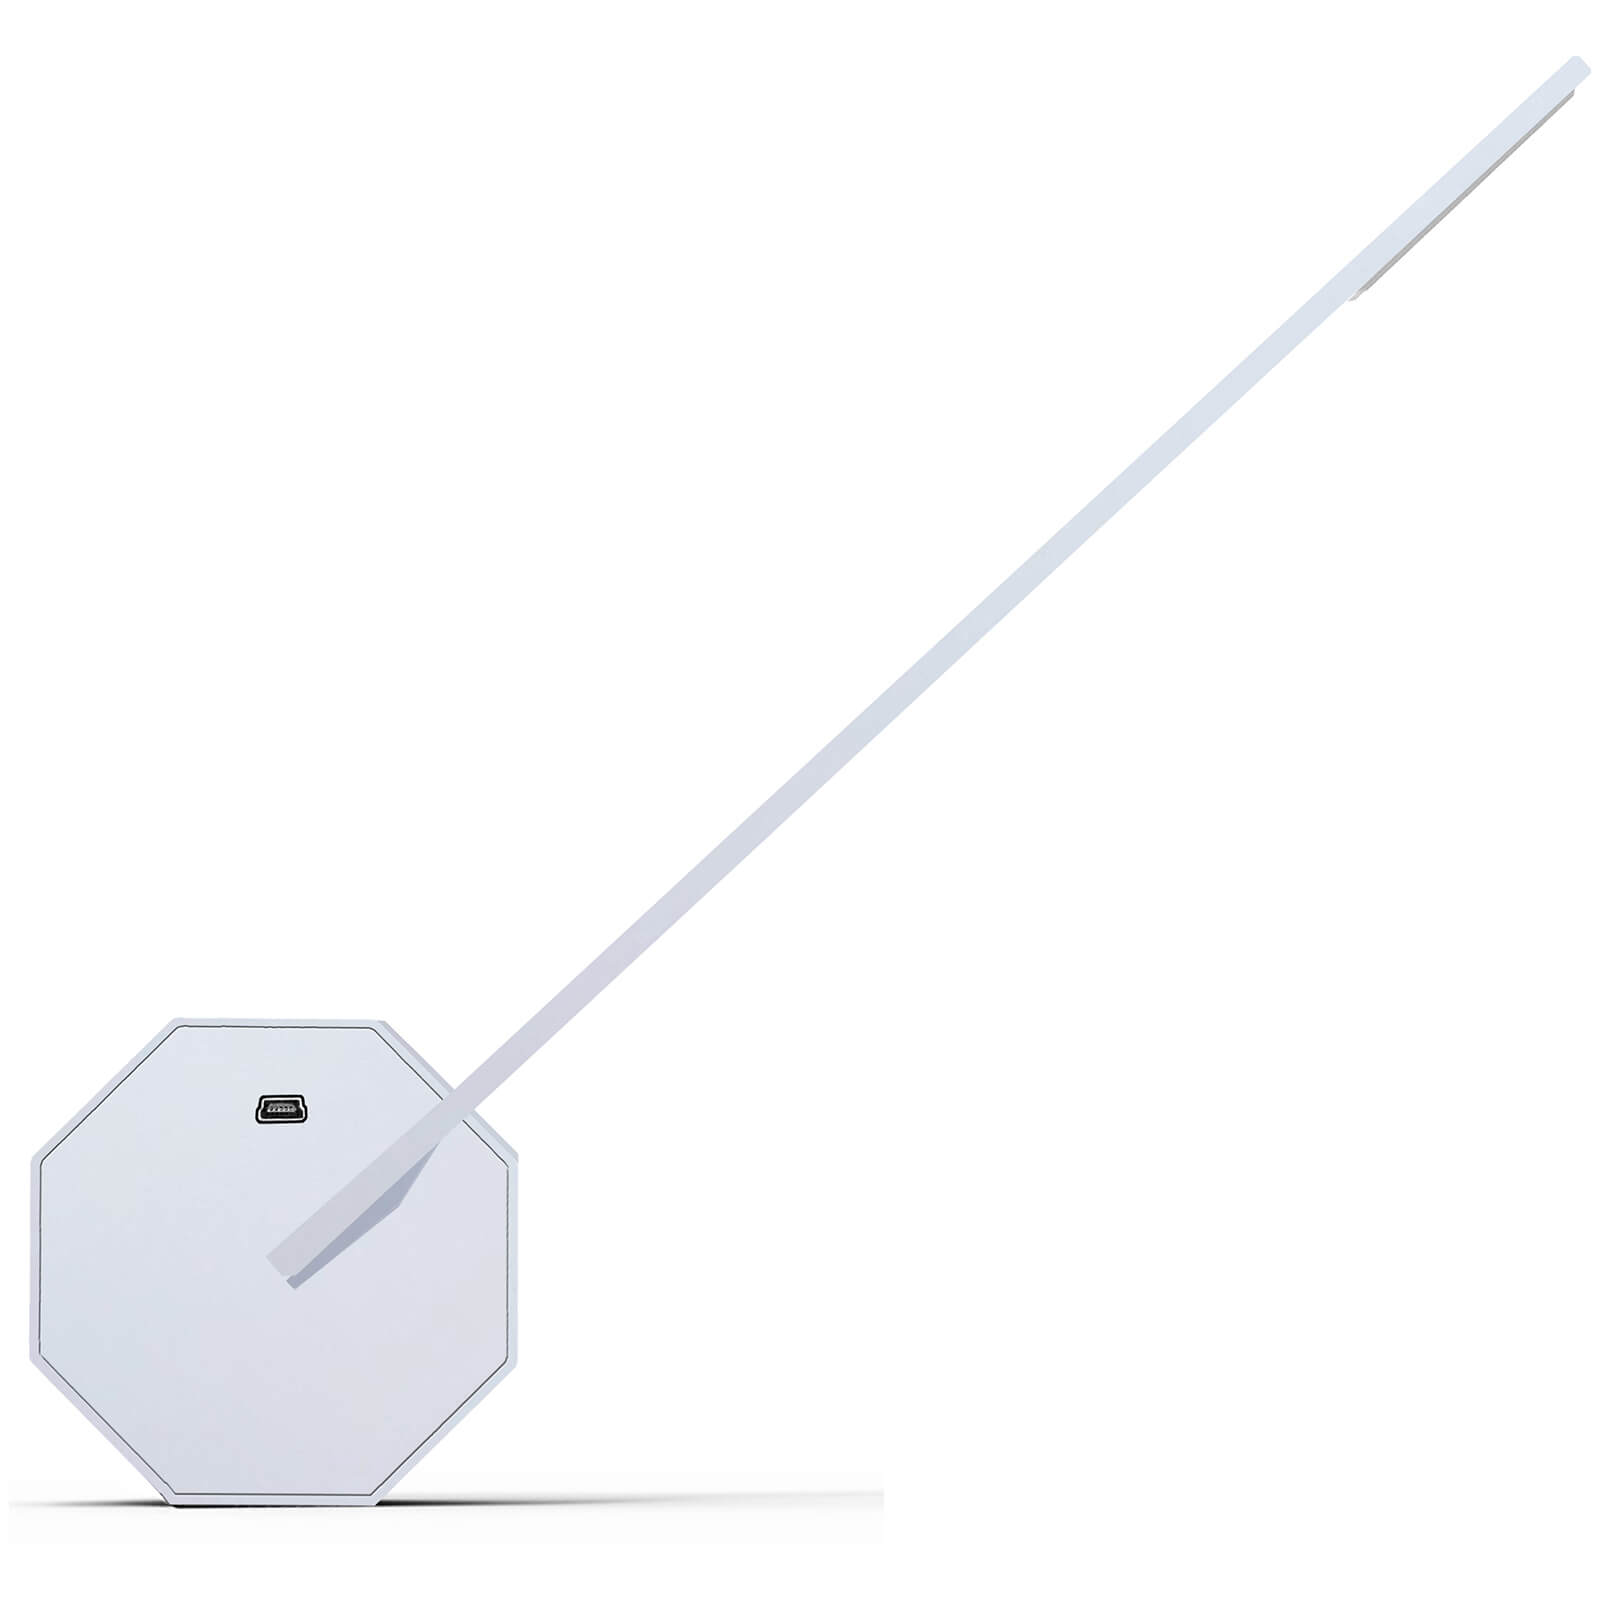 Gingko Octagon One Desk Light - White